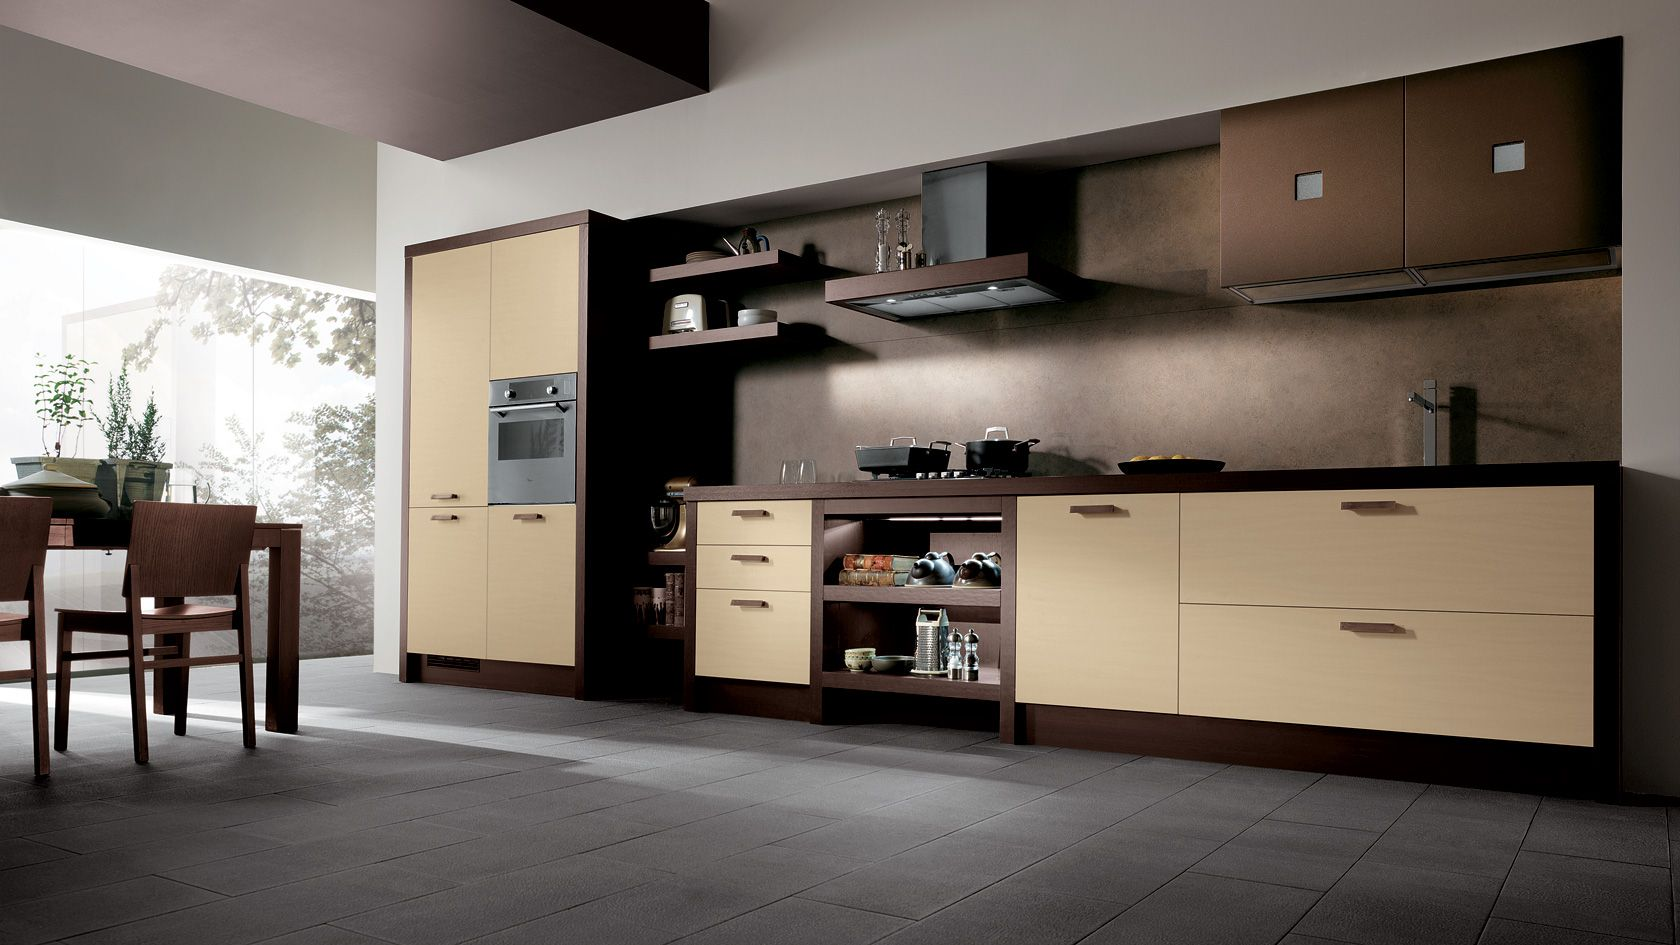 kitchen tribe scavolini | private house | pinterest | kitchens, Hause ideen